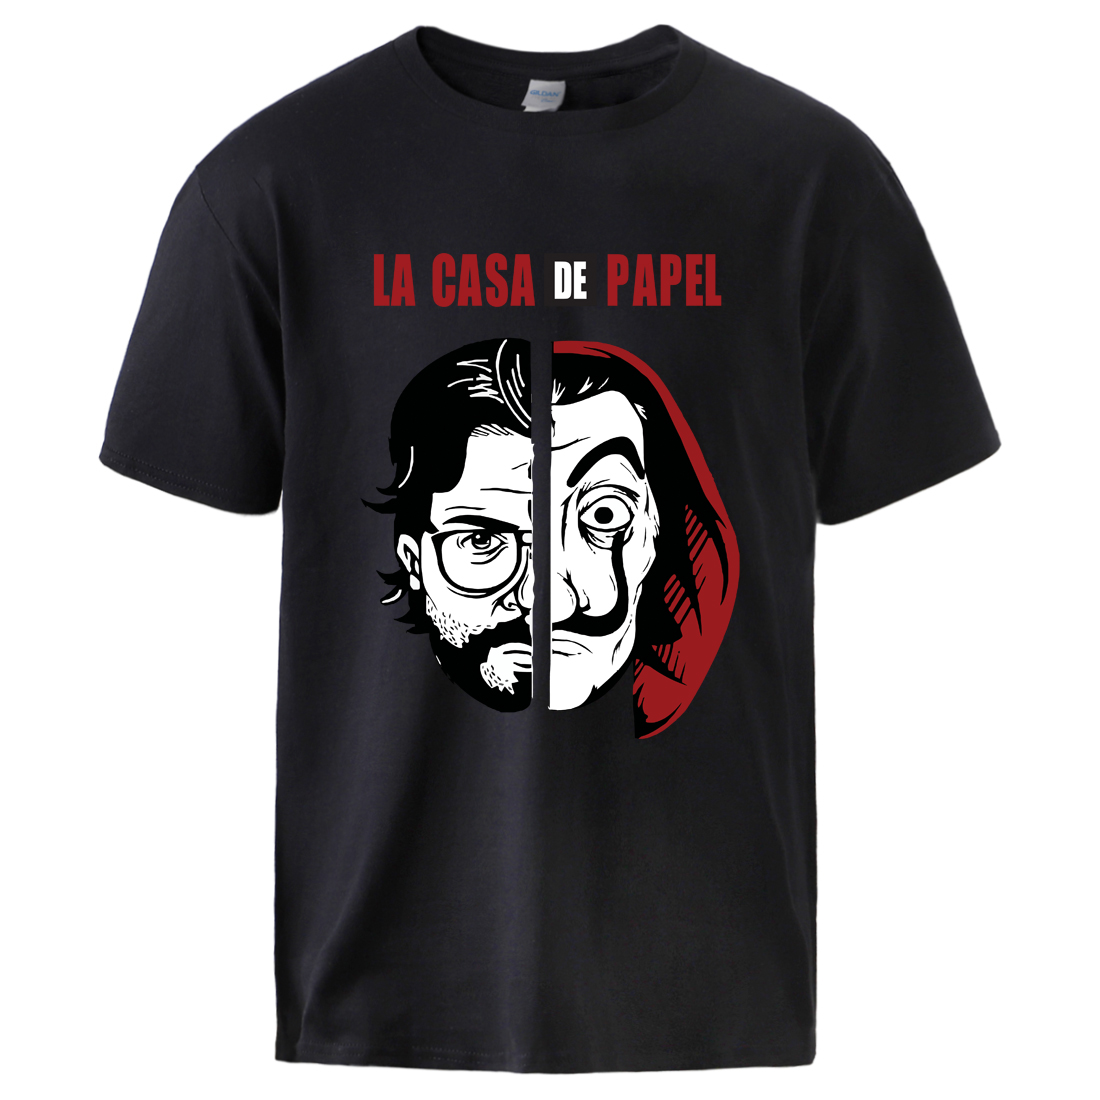 La Casa De Papel Horror Movie Tshirts Man Causal Loose Cotton T Shirt 2020 Summer Short Sleeve Sportswear T Shirts Male Cool Top